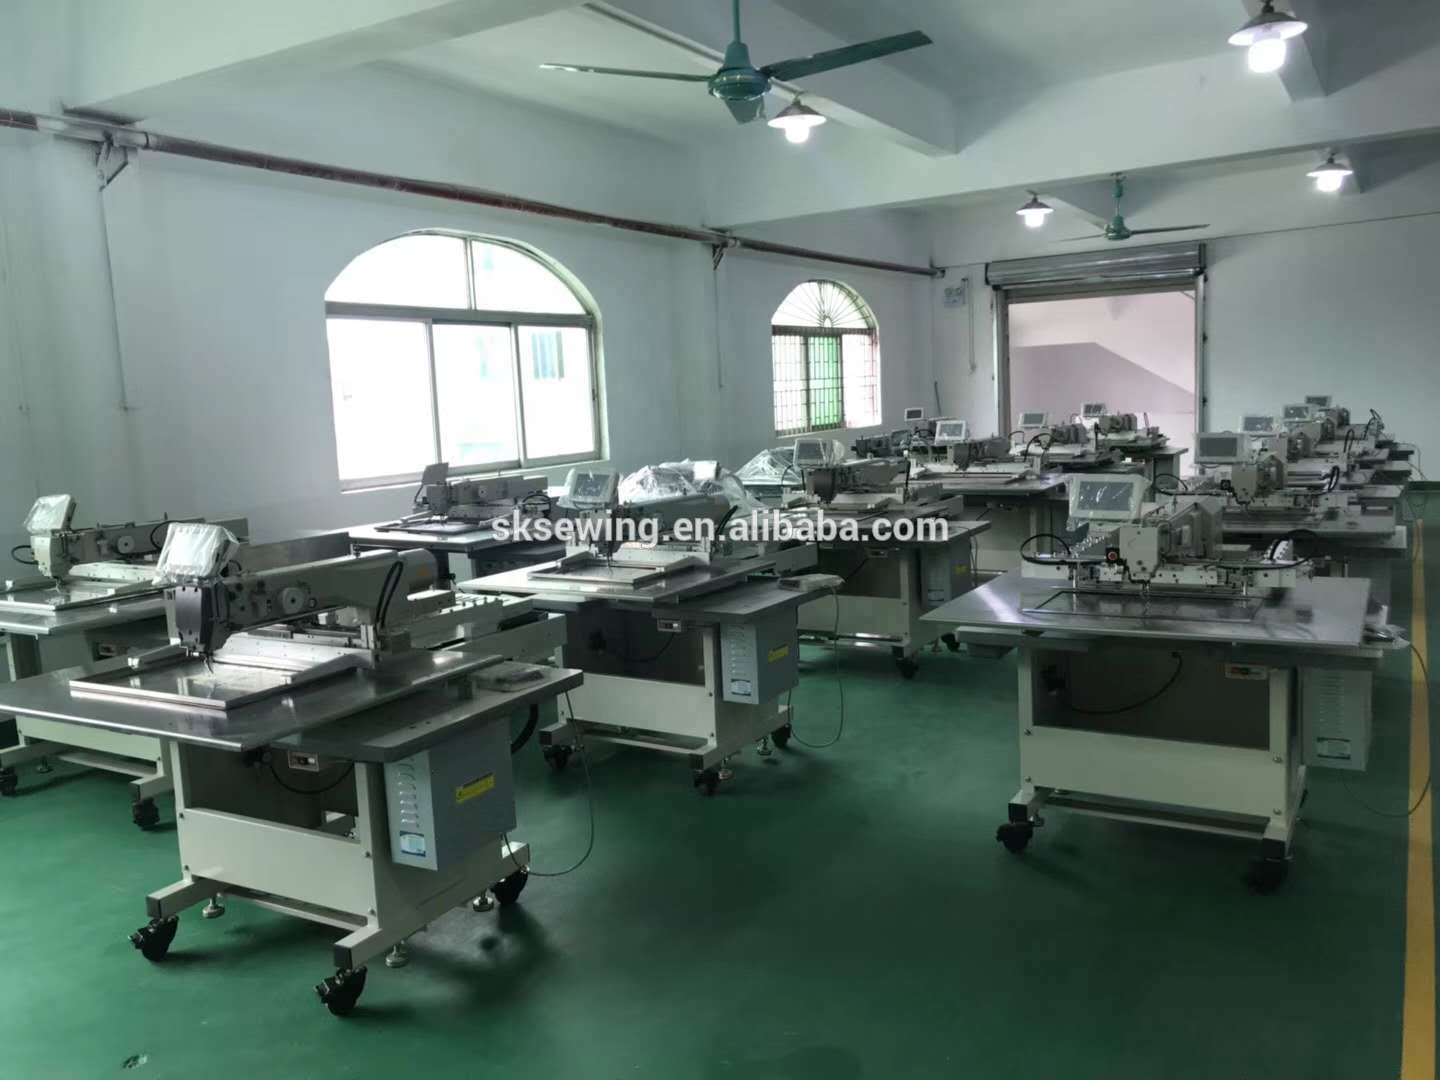 good quality industrial sale price computer design pattern sewing machine